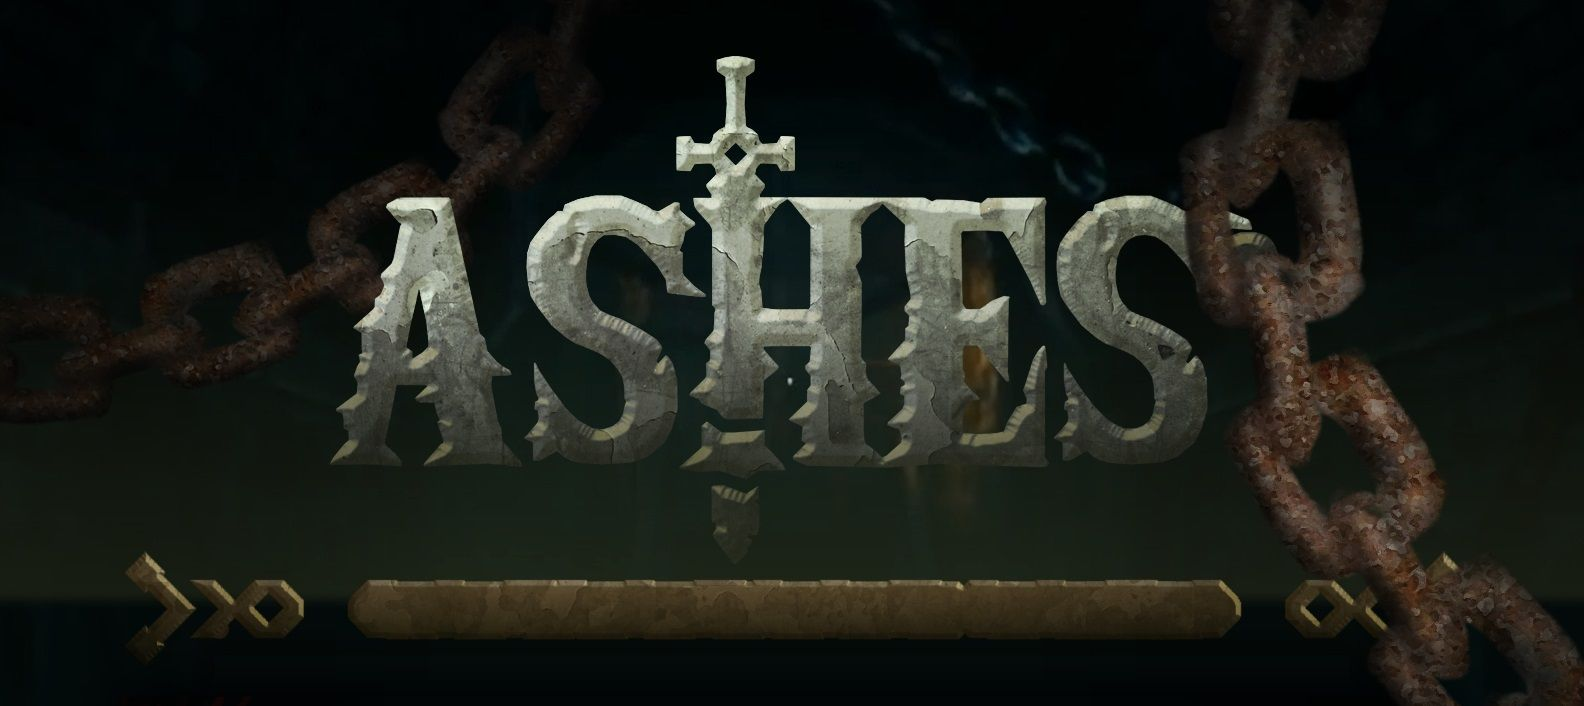 Ashes (Q3 2018) - Ashes is the newest game from Windlimit the creators of Talewind.A first person adventure inspired by Dear Esther, Condemned:Blood origins and The elder scrolls series, and adventure with a very strong narrative component.Play through a dungeon filled with puzzles, enemies and platforms to discover the mysterious past of the protagonist.Studio: Windlimit StudiosRole: Composer, Sound Design